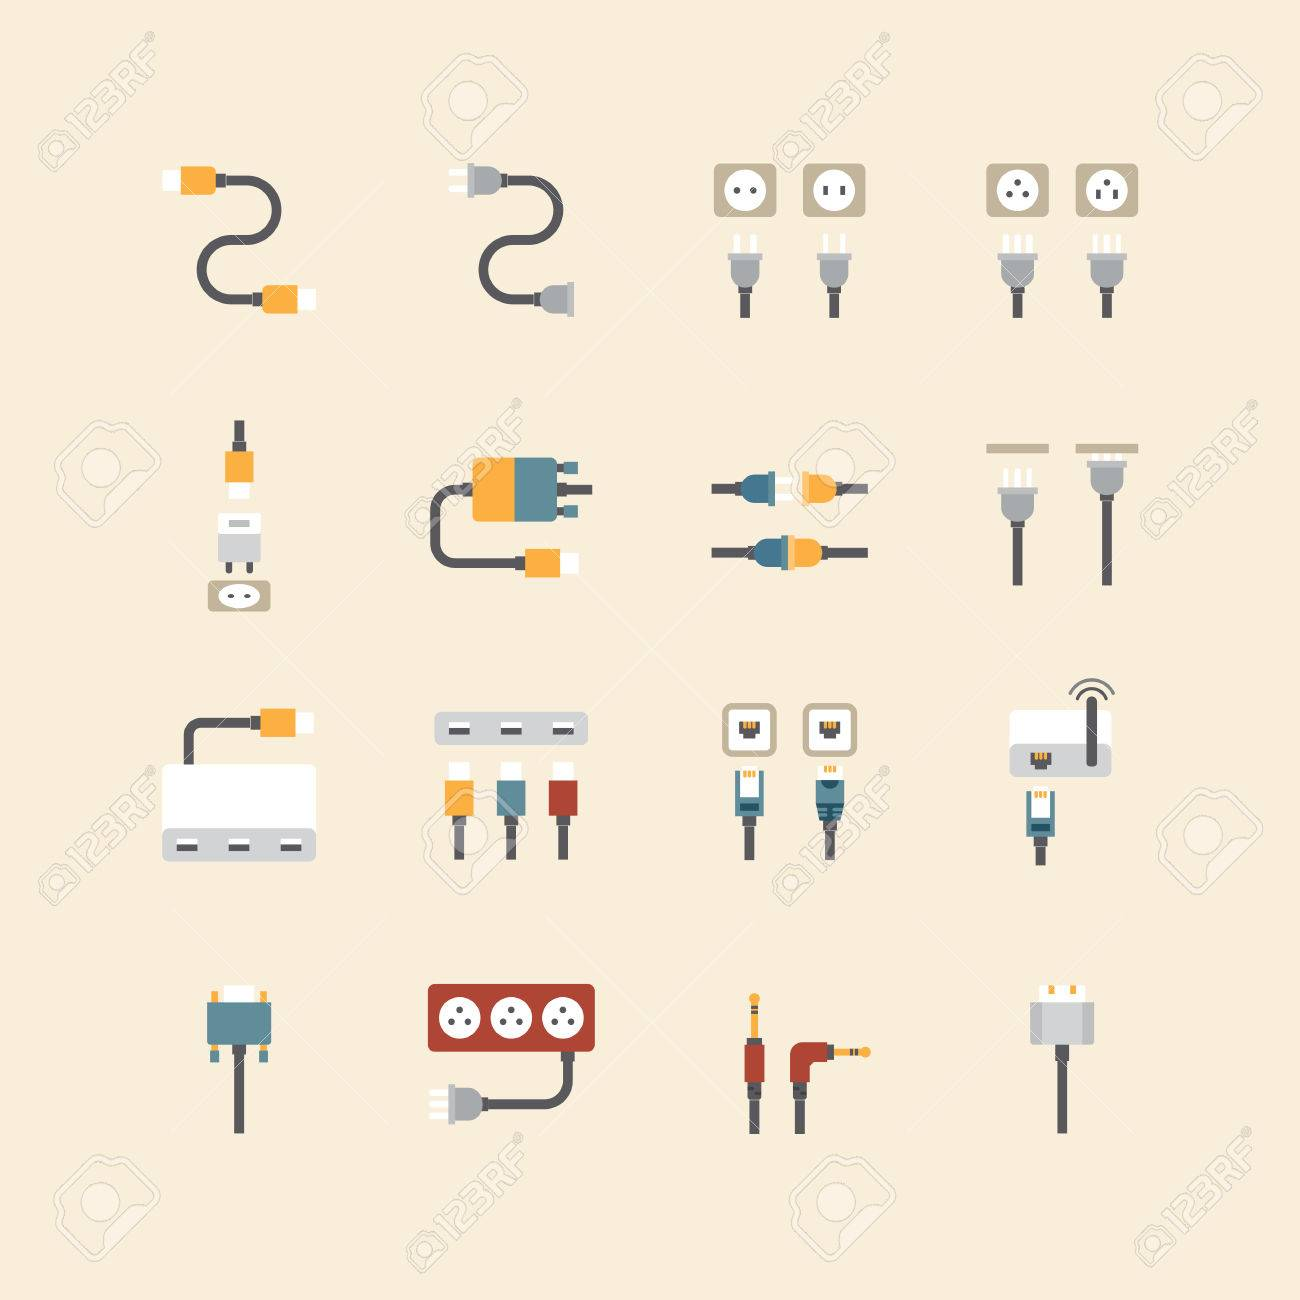 wire stock photos images royalty wire images and pictures wire vector linear web icons set cable wire computer and electricity plug collection of